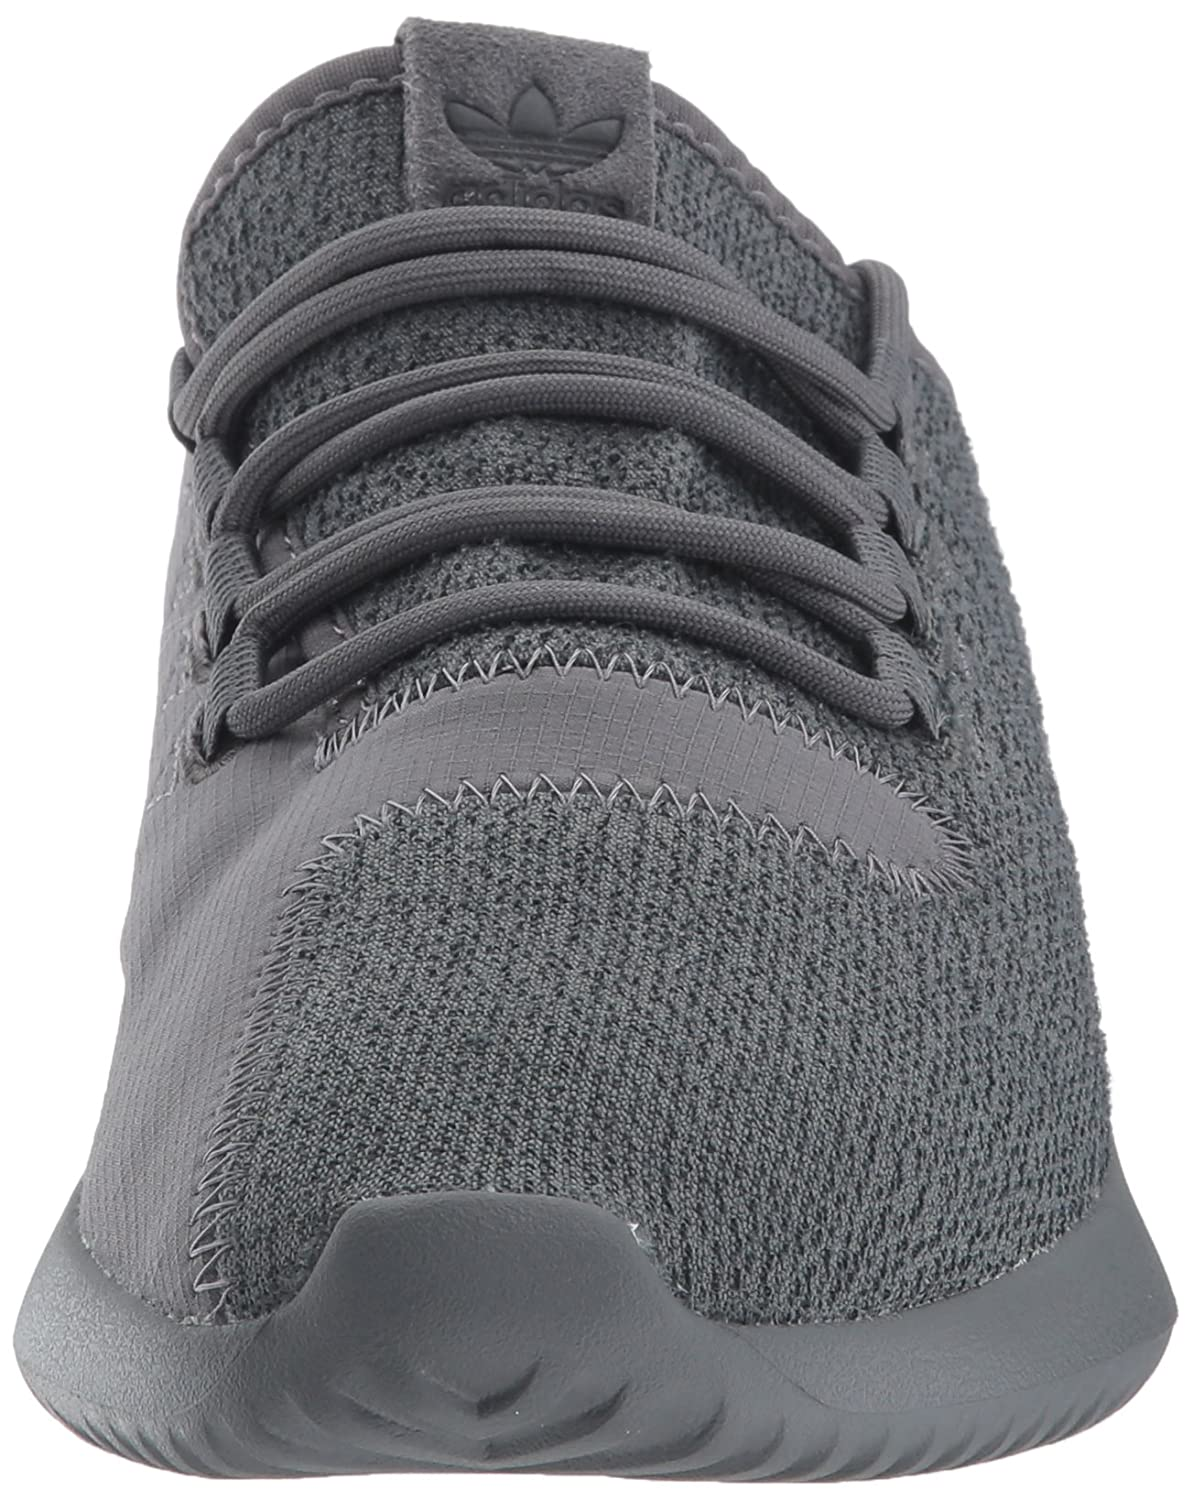 adidas Originals Women's Tubular Shadow W Fashion Sneaker B01N0QWYM3 9 B(M) US|Grey Five/Grey Five/Grey Five